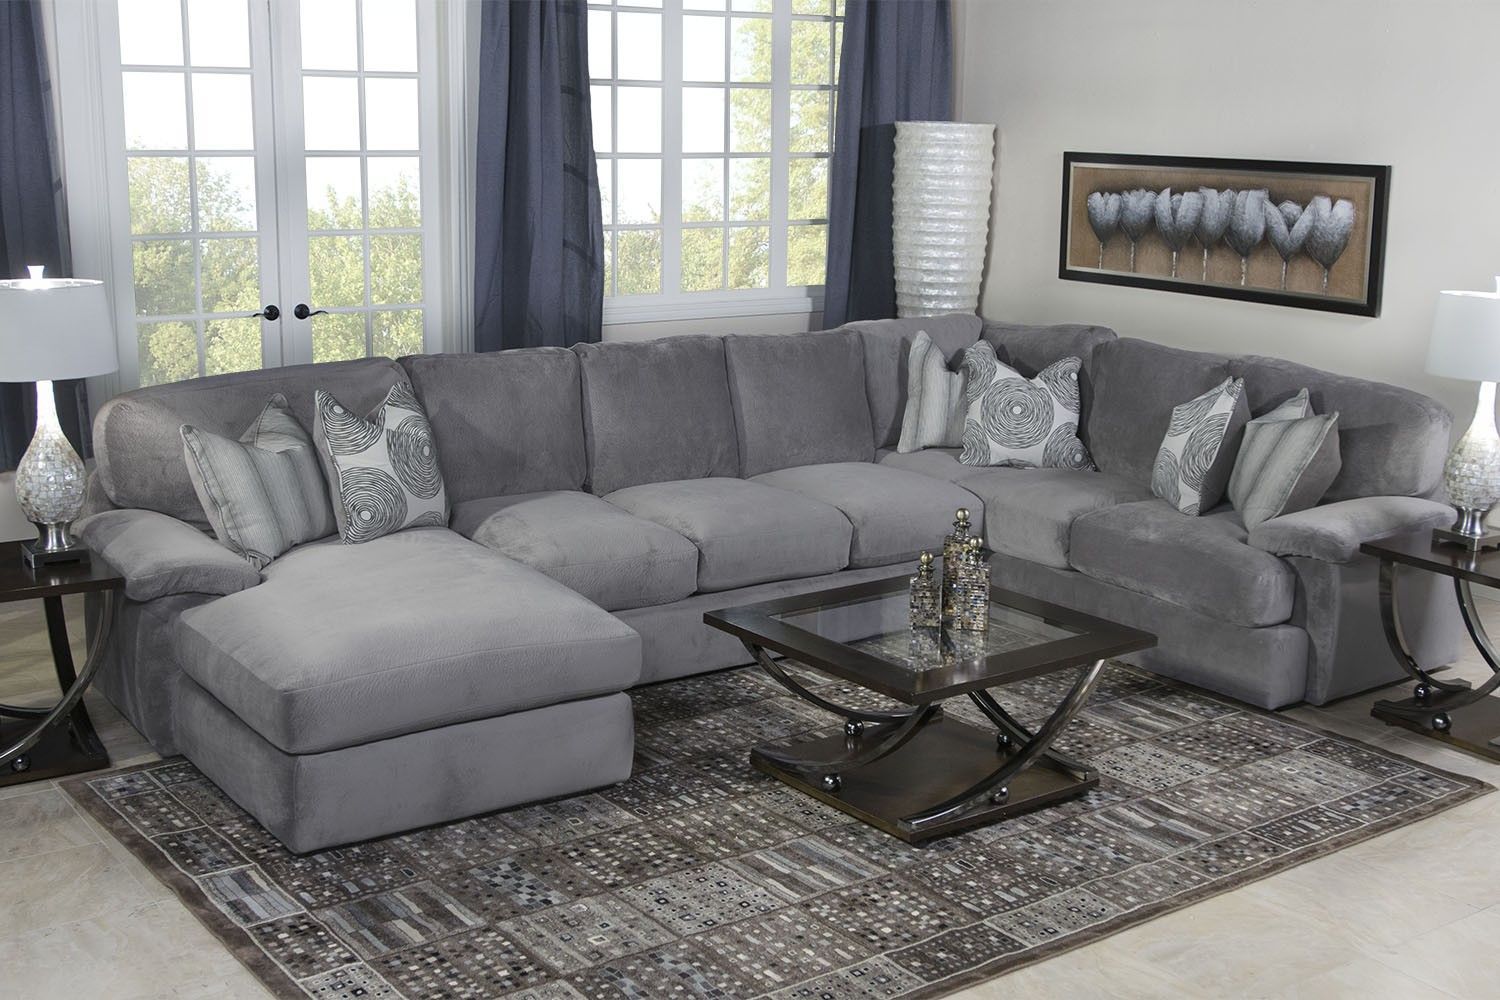 Key west sectional living room in gray living room mor for Living room decorating ideas grey couch